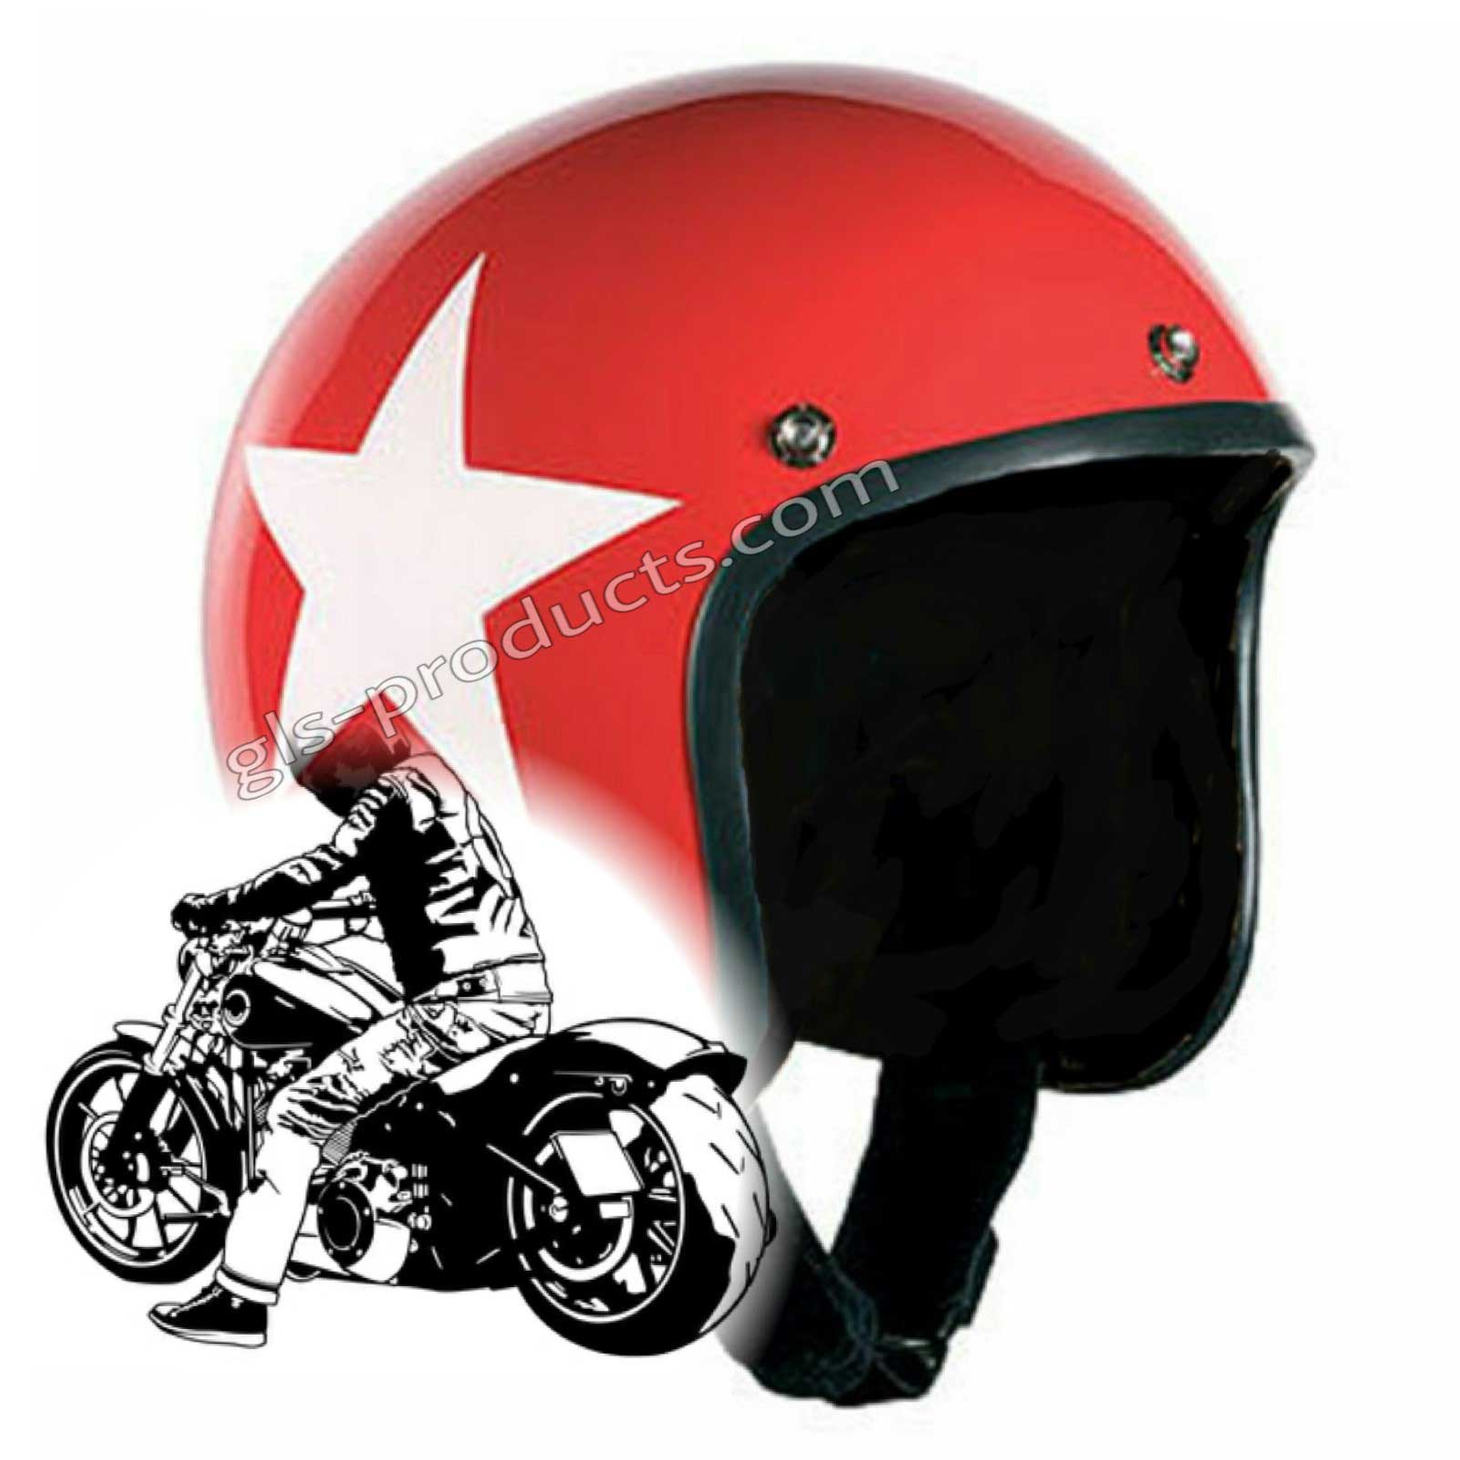 Bandit Star Red Jet Helmet - Red Motorcycle Helmet – Picture 1